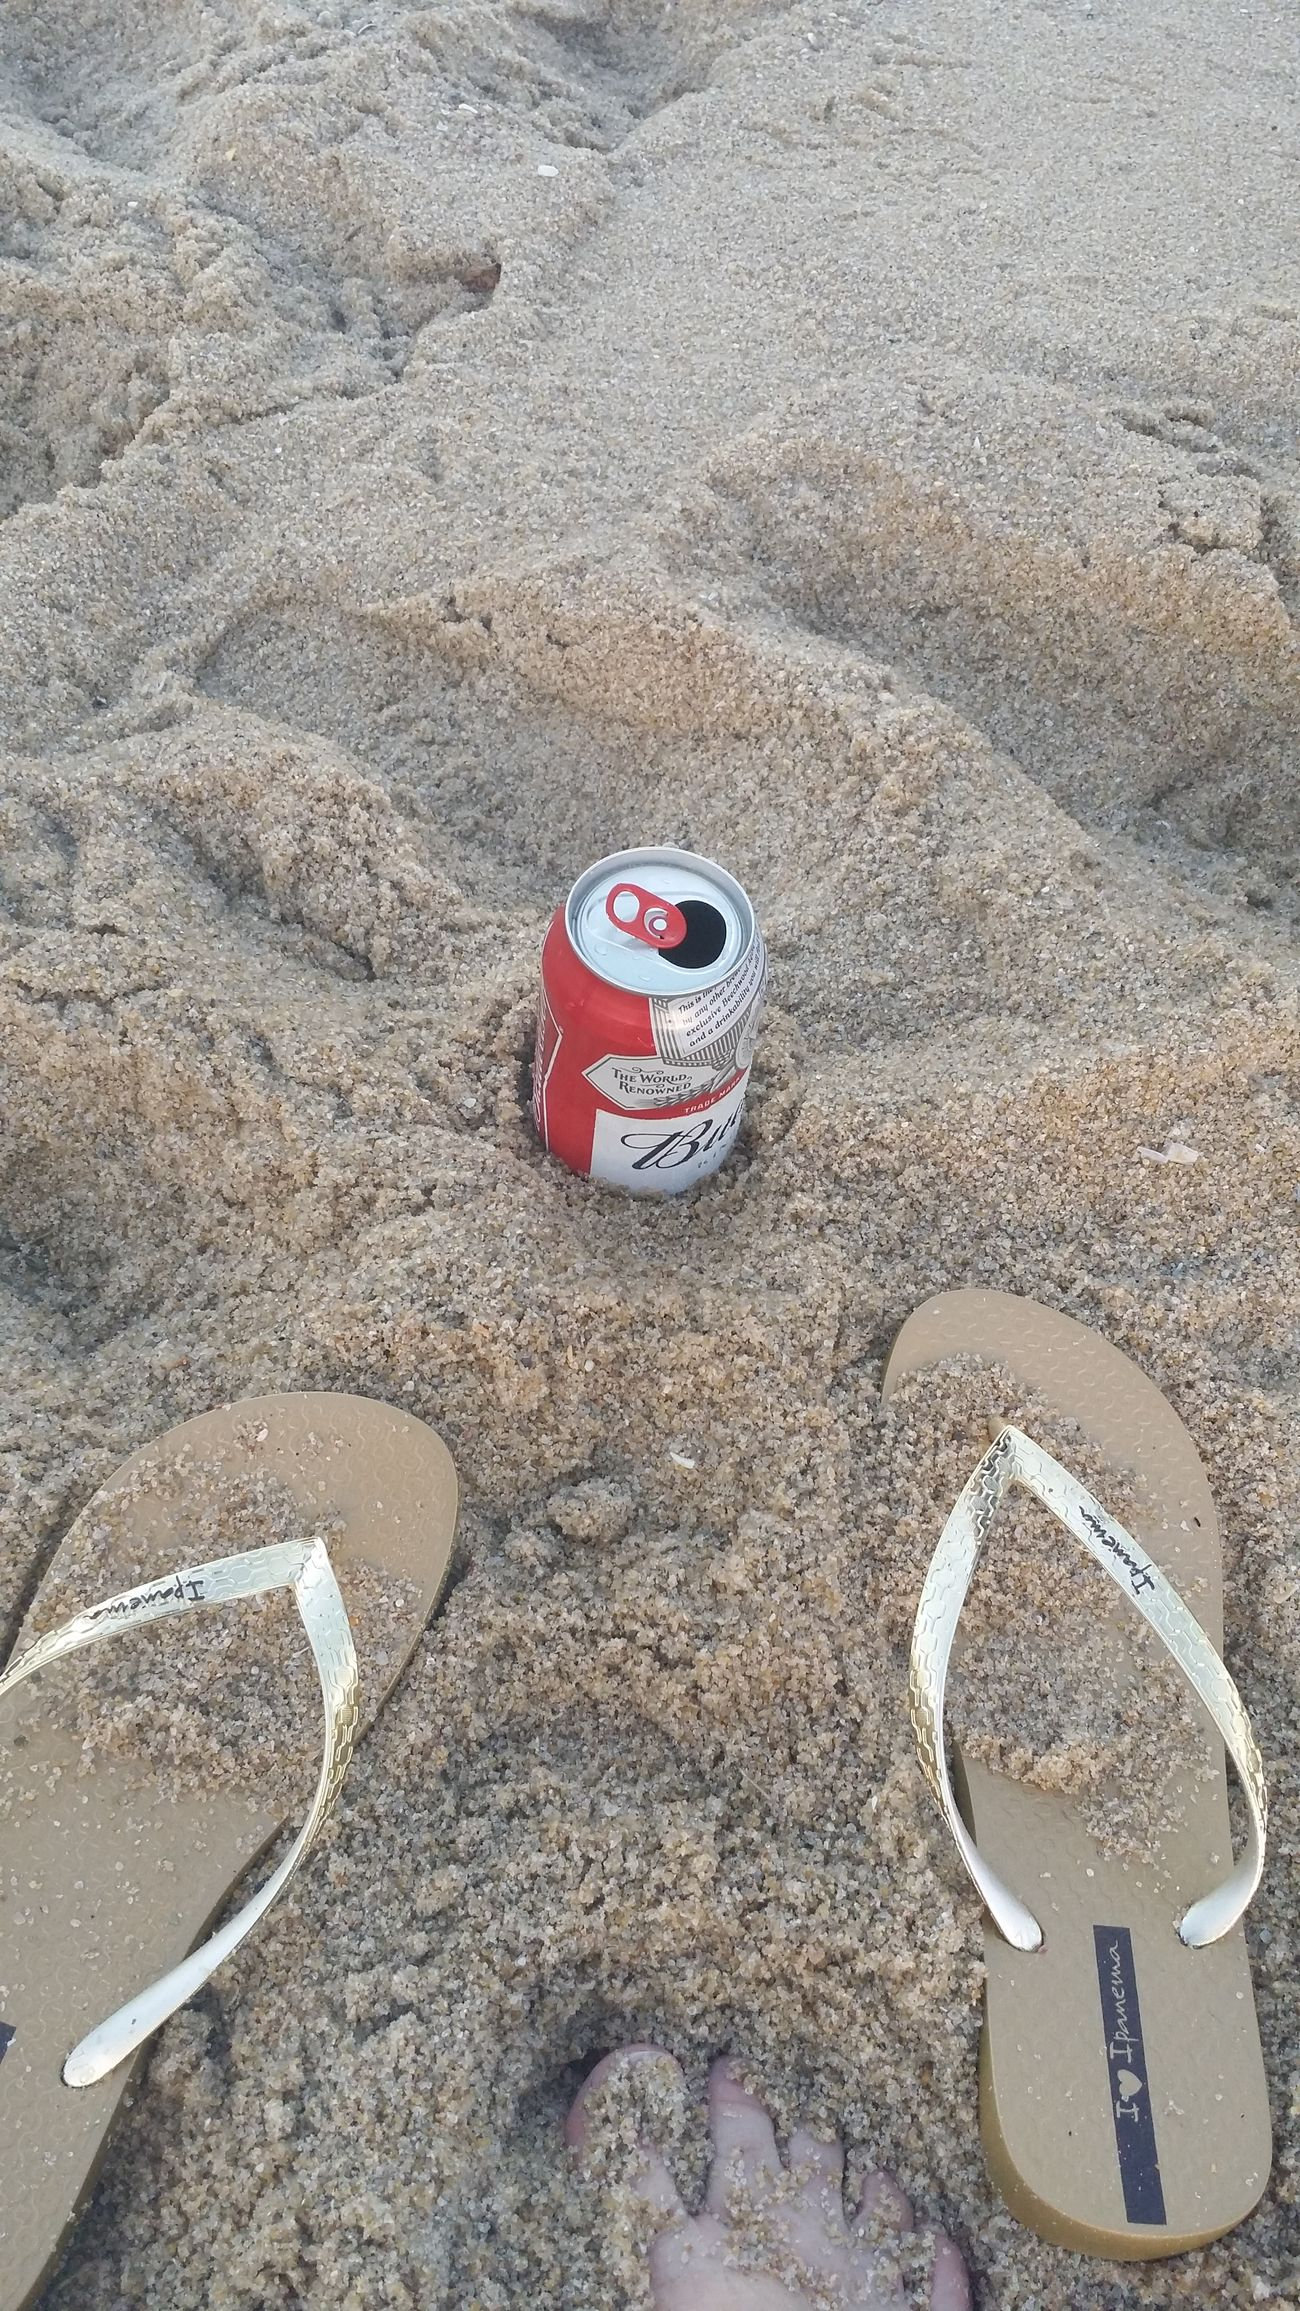 Sand Beach Sunlight High Angle View Day Outdoors Nature Relaxing View Relaxing Moments Ineed Beachhome Imaloneallthetime Imalone Ilike Peace And Quiet Peaceful Peace And Tranquility MyPlace❤️❤️❤️❤️❤️❤️❤️❤️❤️❤️❤️❤️❤️❤️❤️❤️❤️❤️❤️❤️❤️beer and peace very I need Daylight Whitefeets 😀😊😉😃